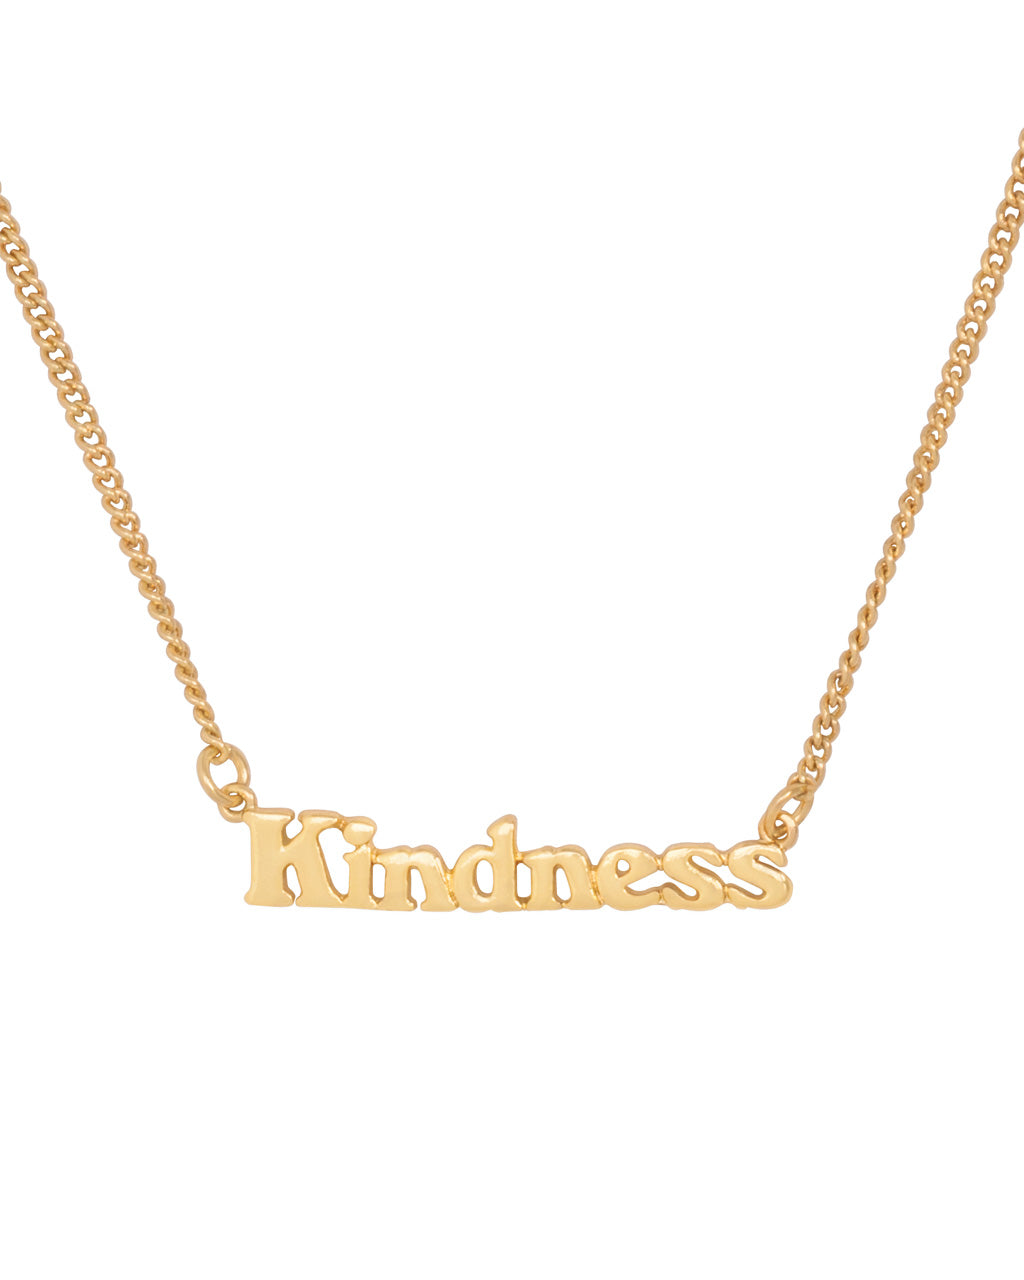 gold chain necklace with the word kindness